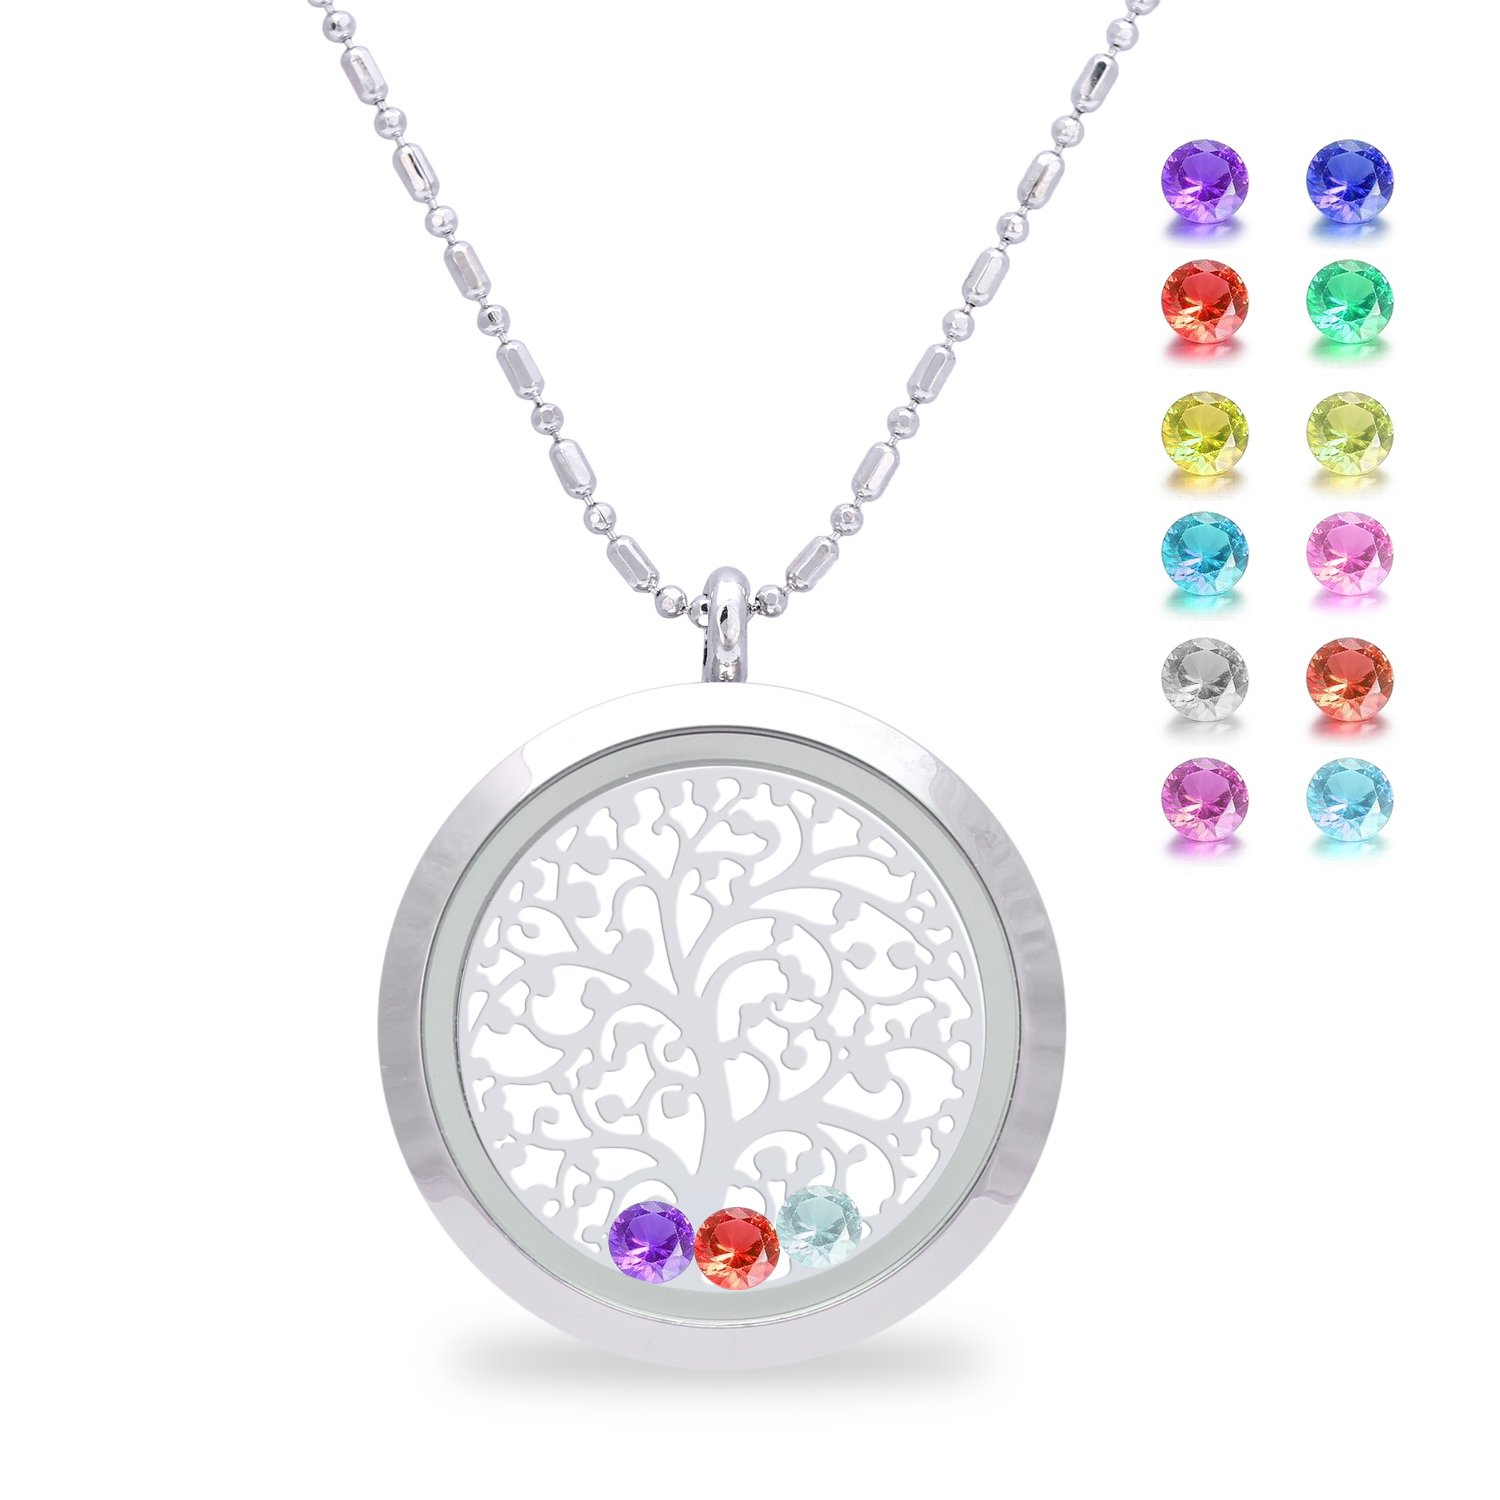 Family Tree of life Screw Floating Charm Living Memory Locket Pendant Necklace, Mom birthday gifts, mother gifts from daughter, christmas day gifts for mom, friendship, sweetheart (Smooth)